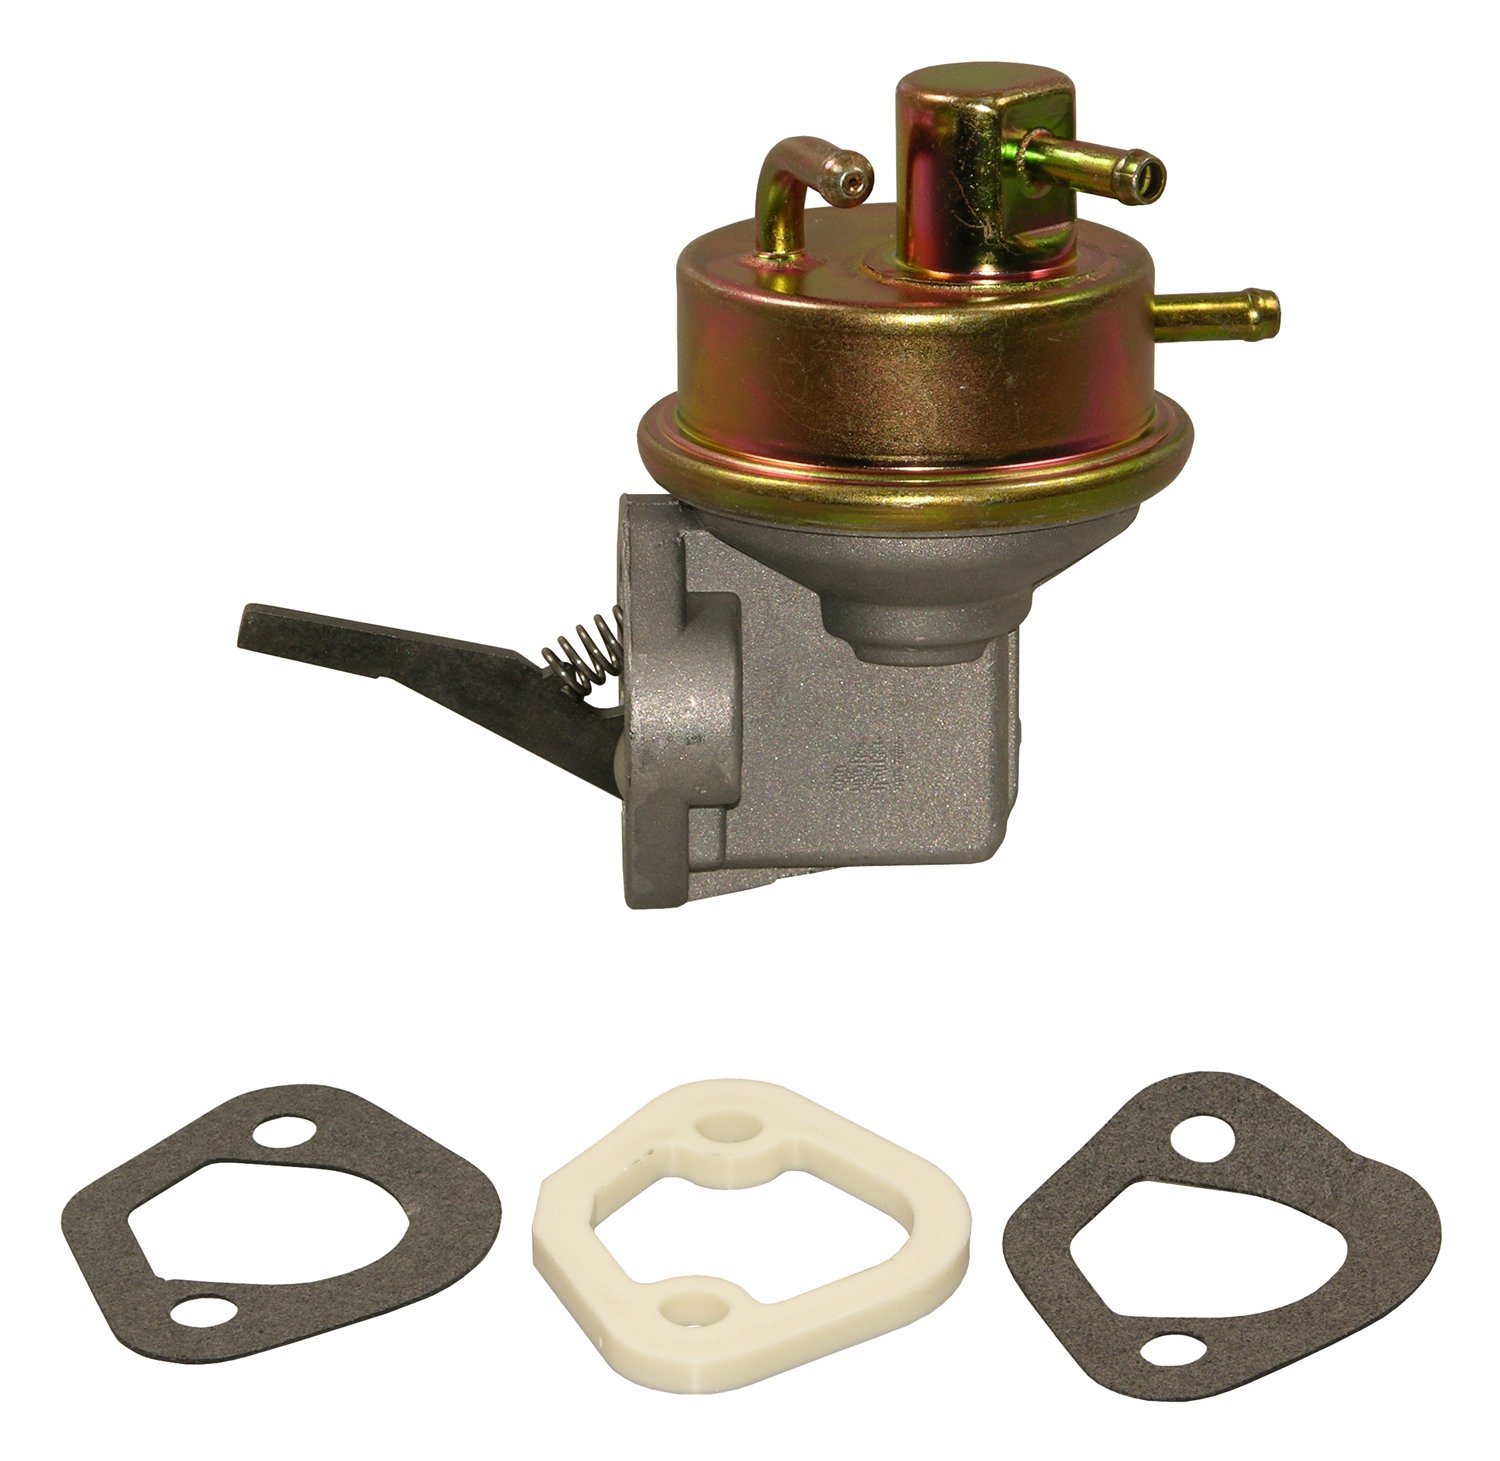 1987 Nissan Sentra Mechanical Fuel Pump AF 1368